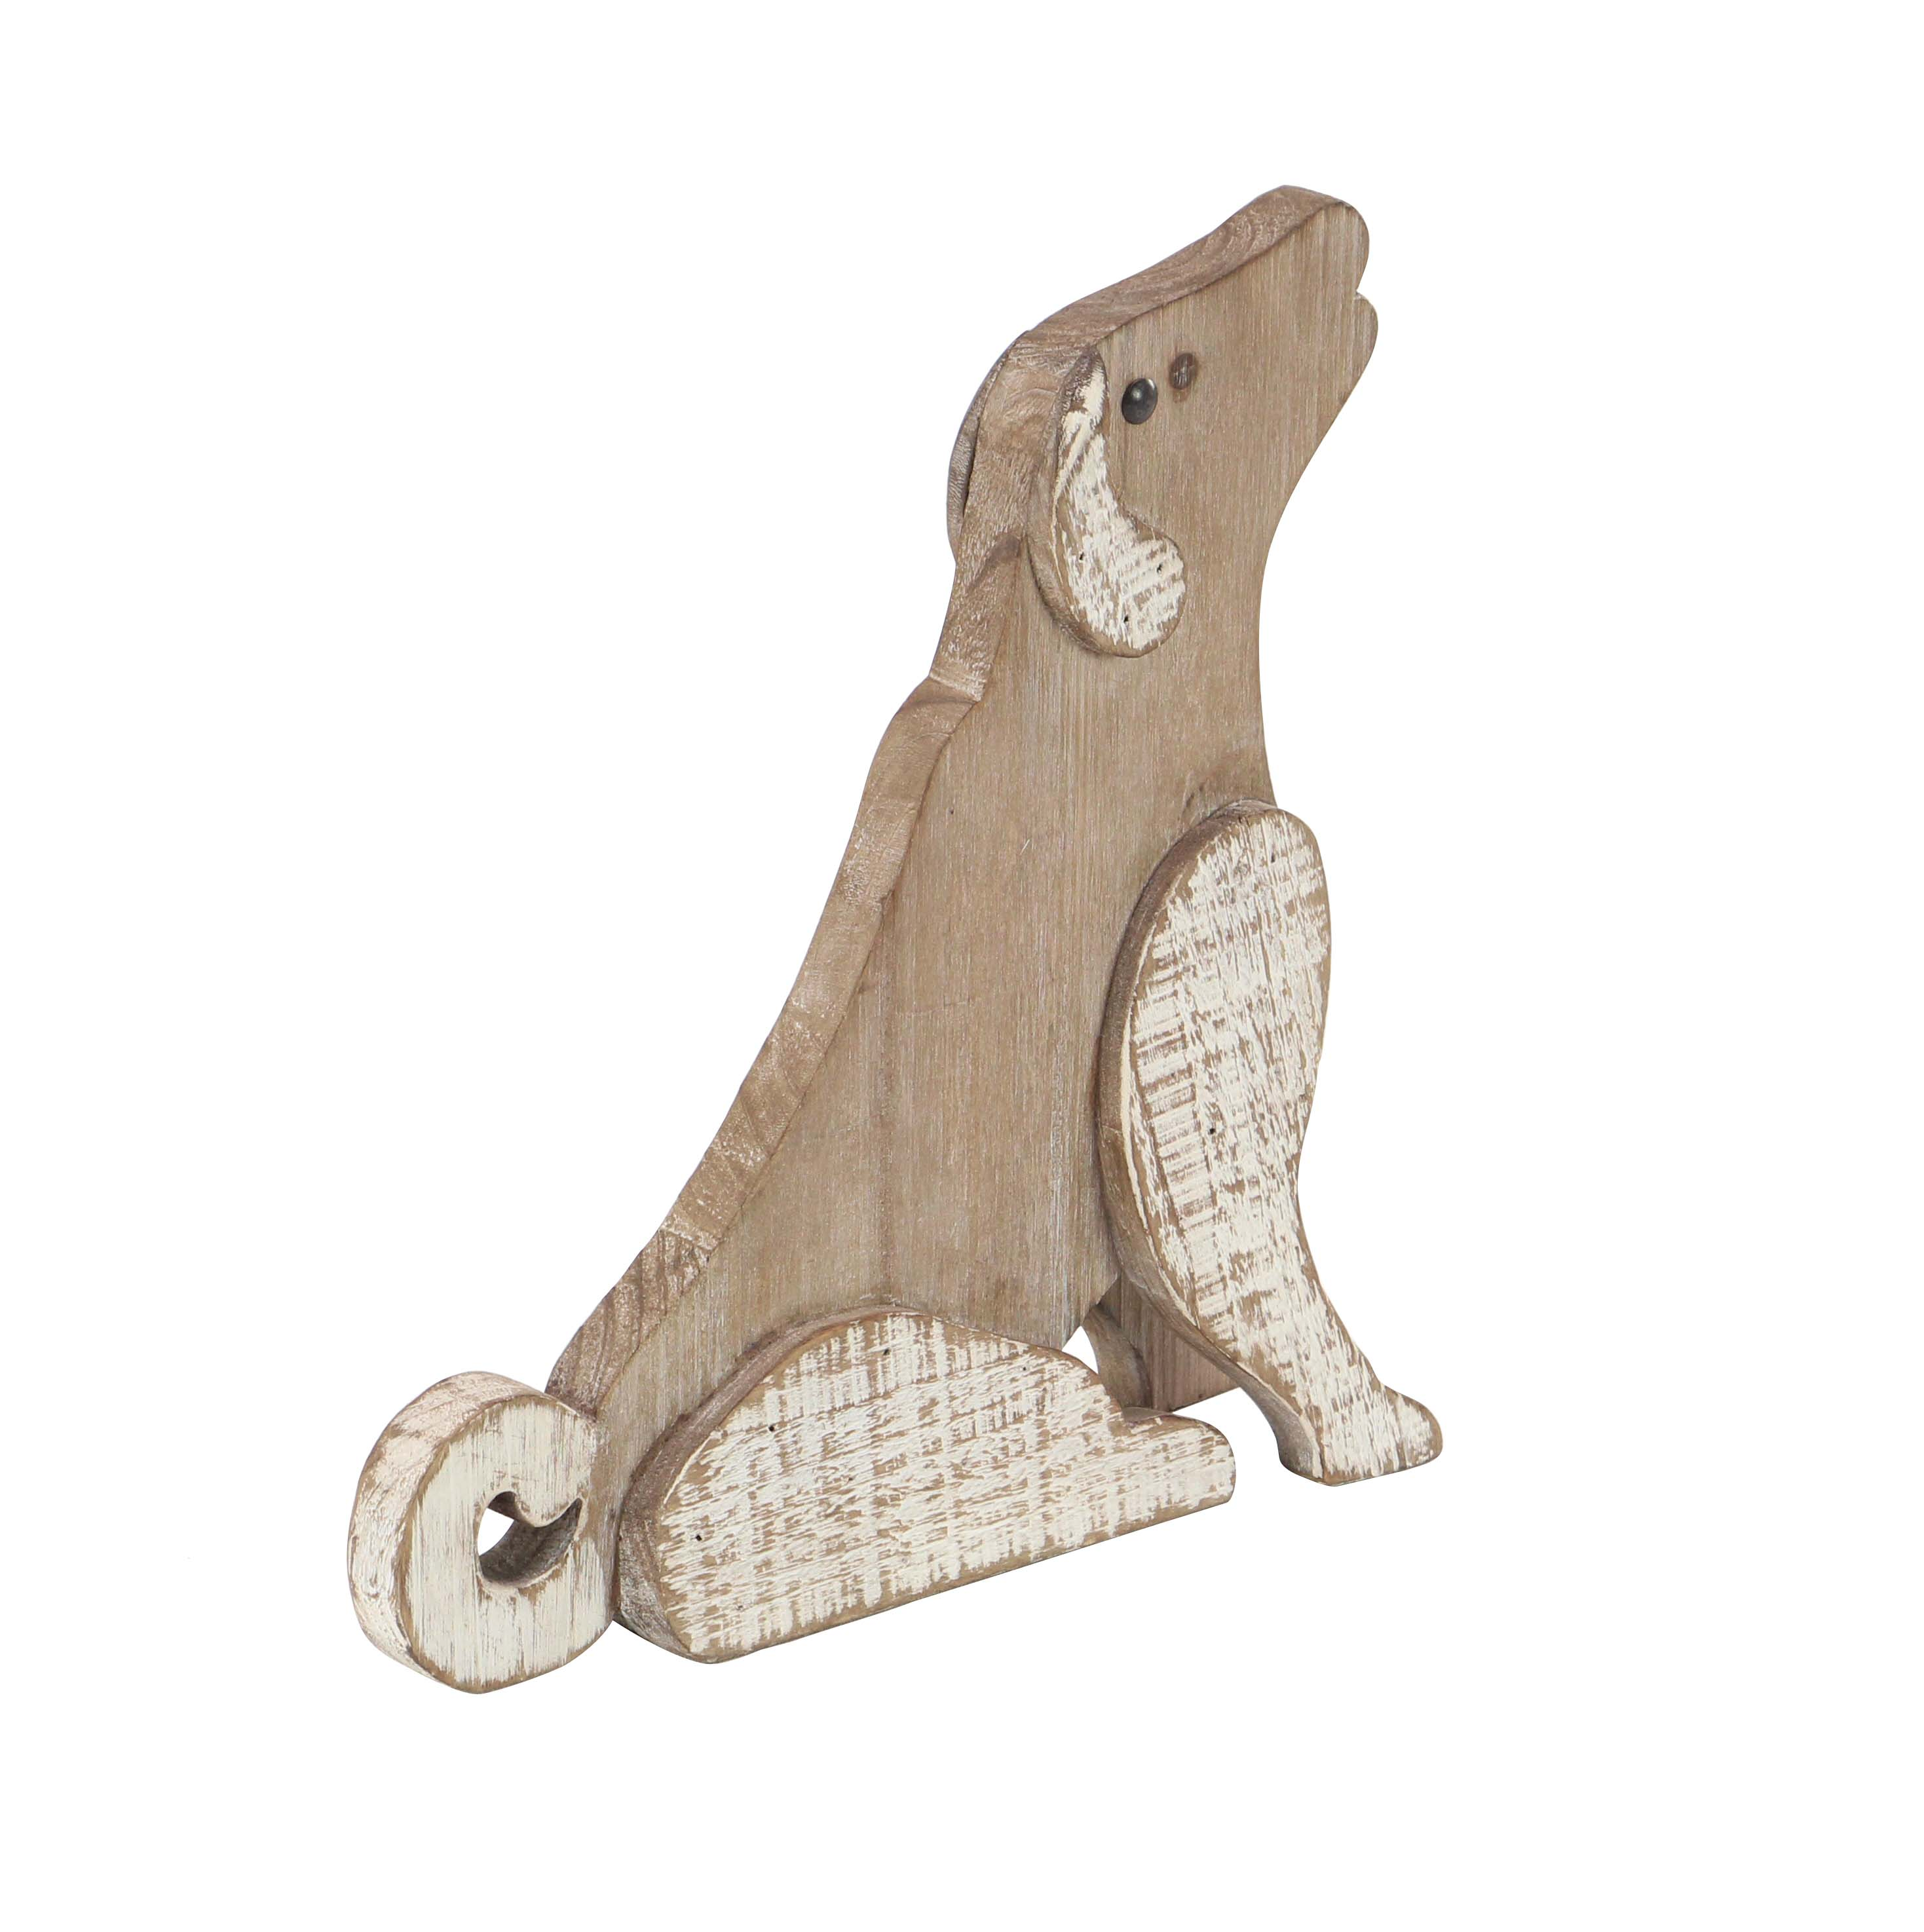 Decmode Farmhouse White and Brown Wooden Sitting Dog Decorative Sculpture, White by DecMode